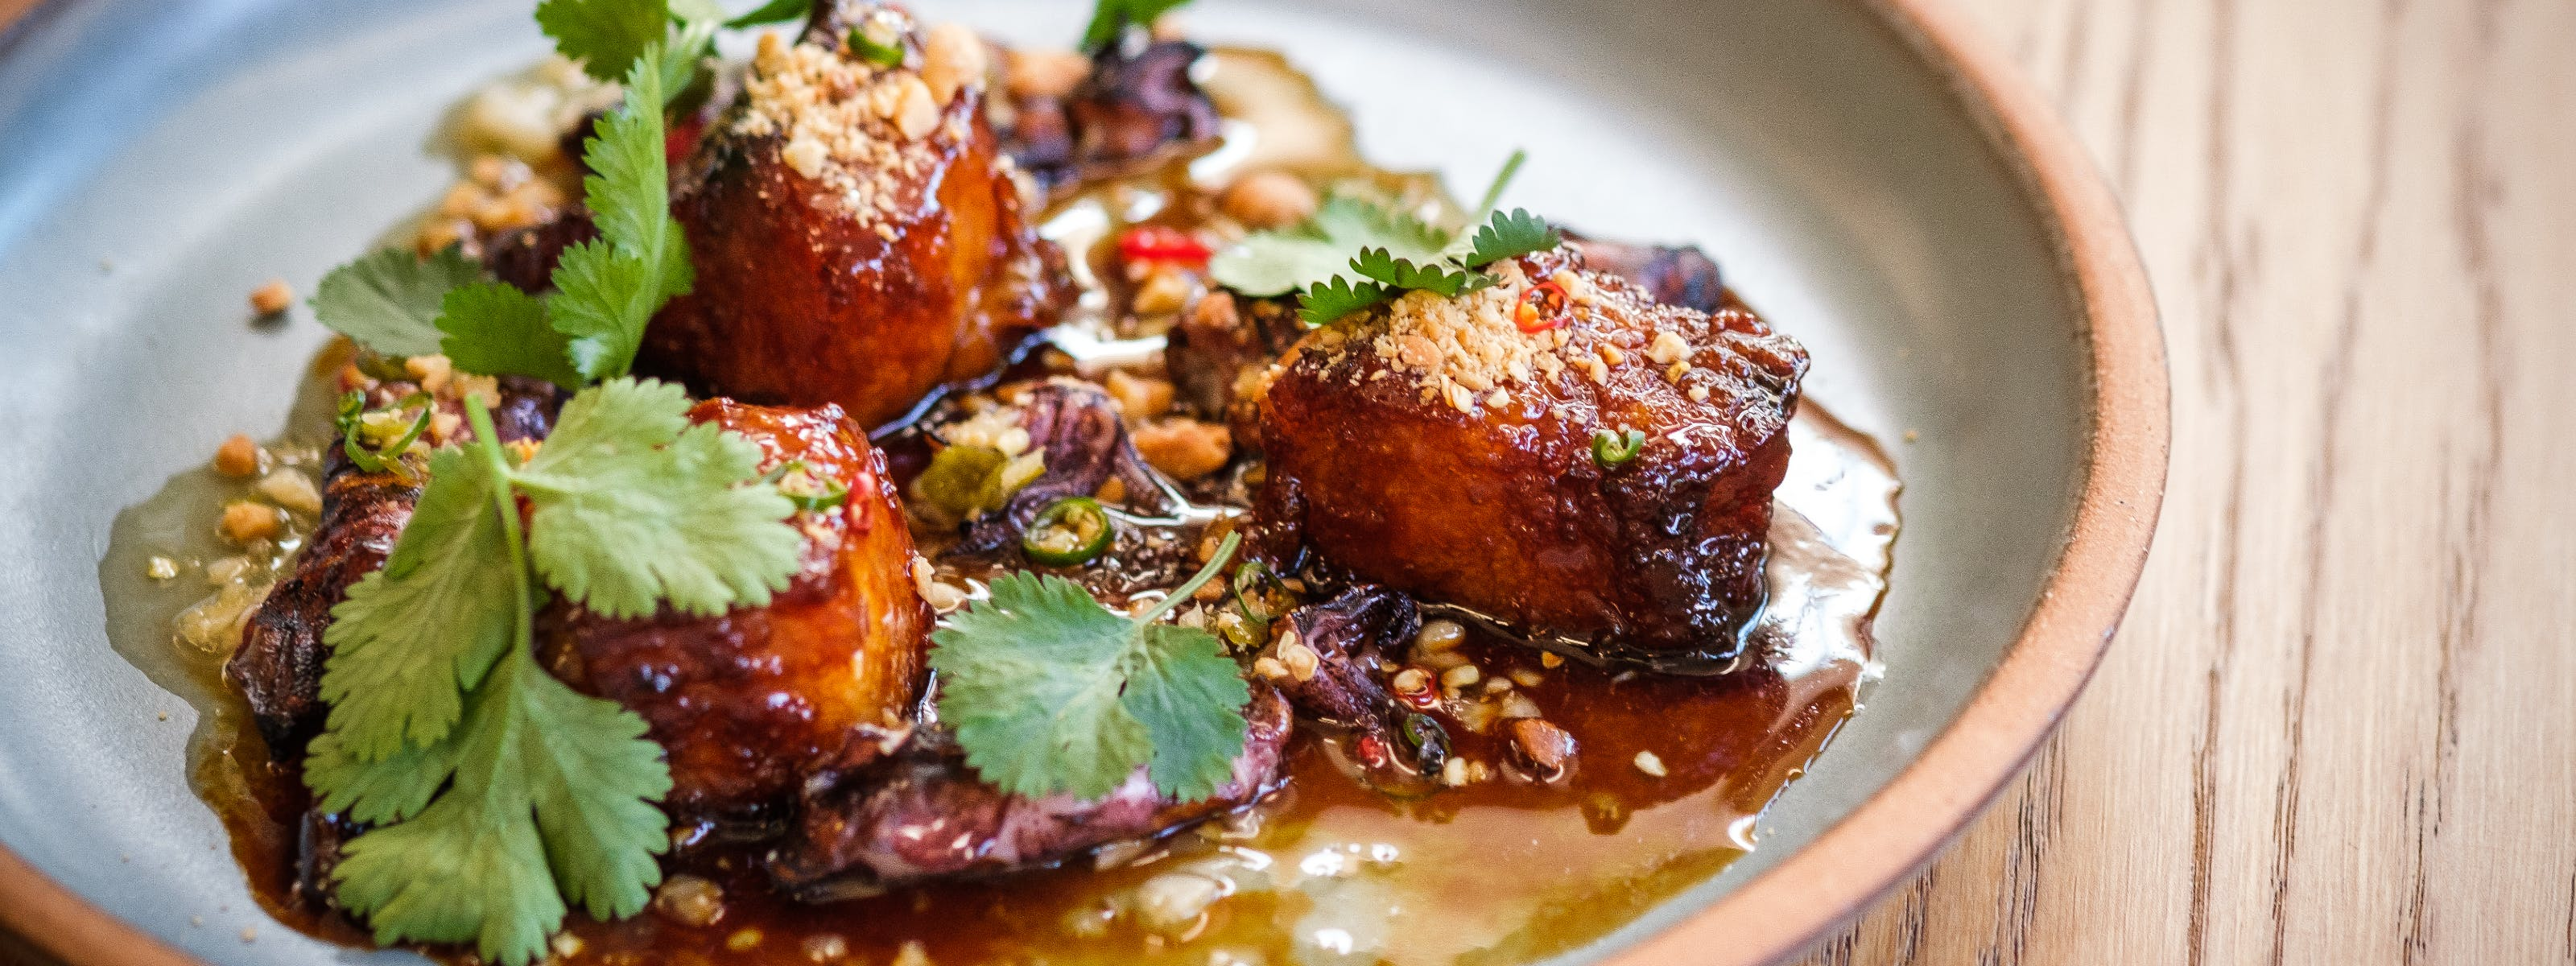 11 Exciting Dinner Spots To Try In SF Right Now - San Francisco - The Infatuation